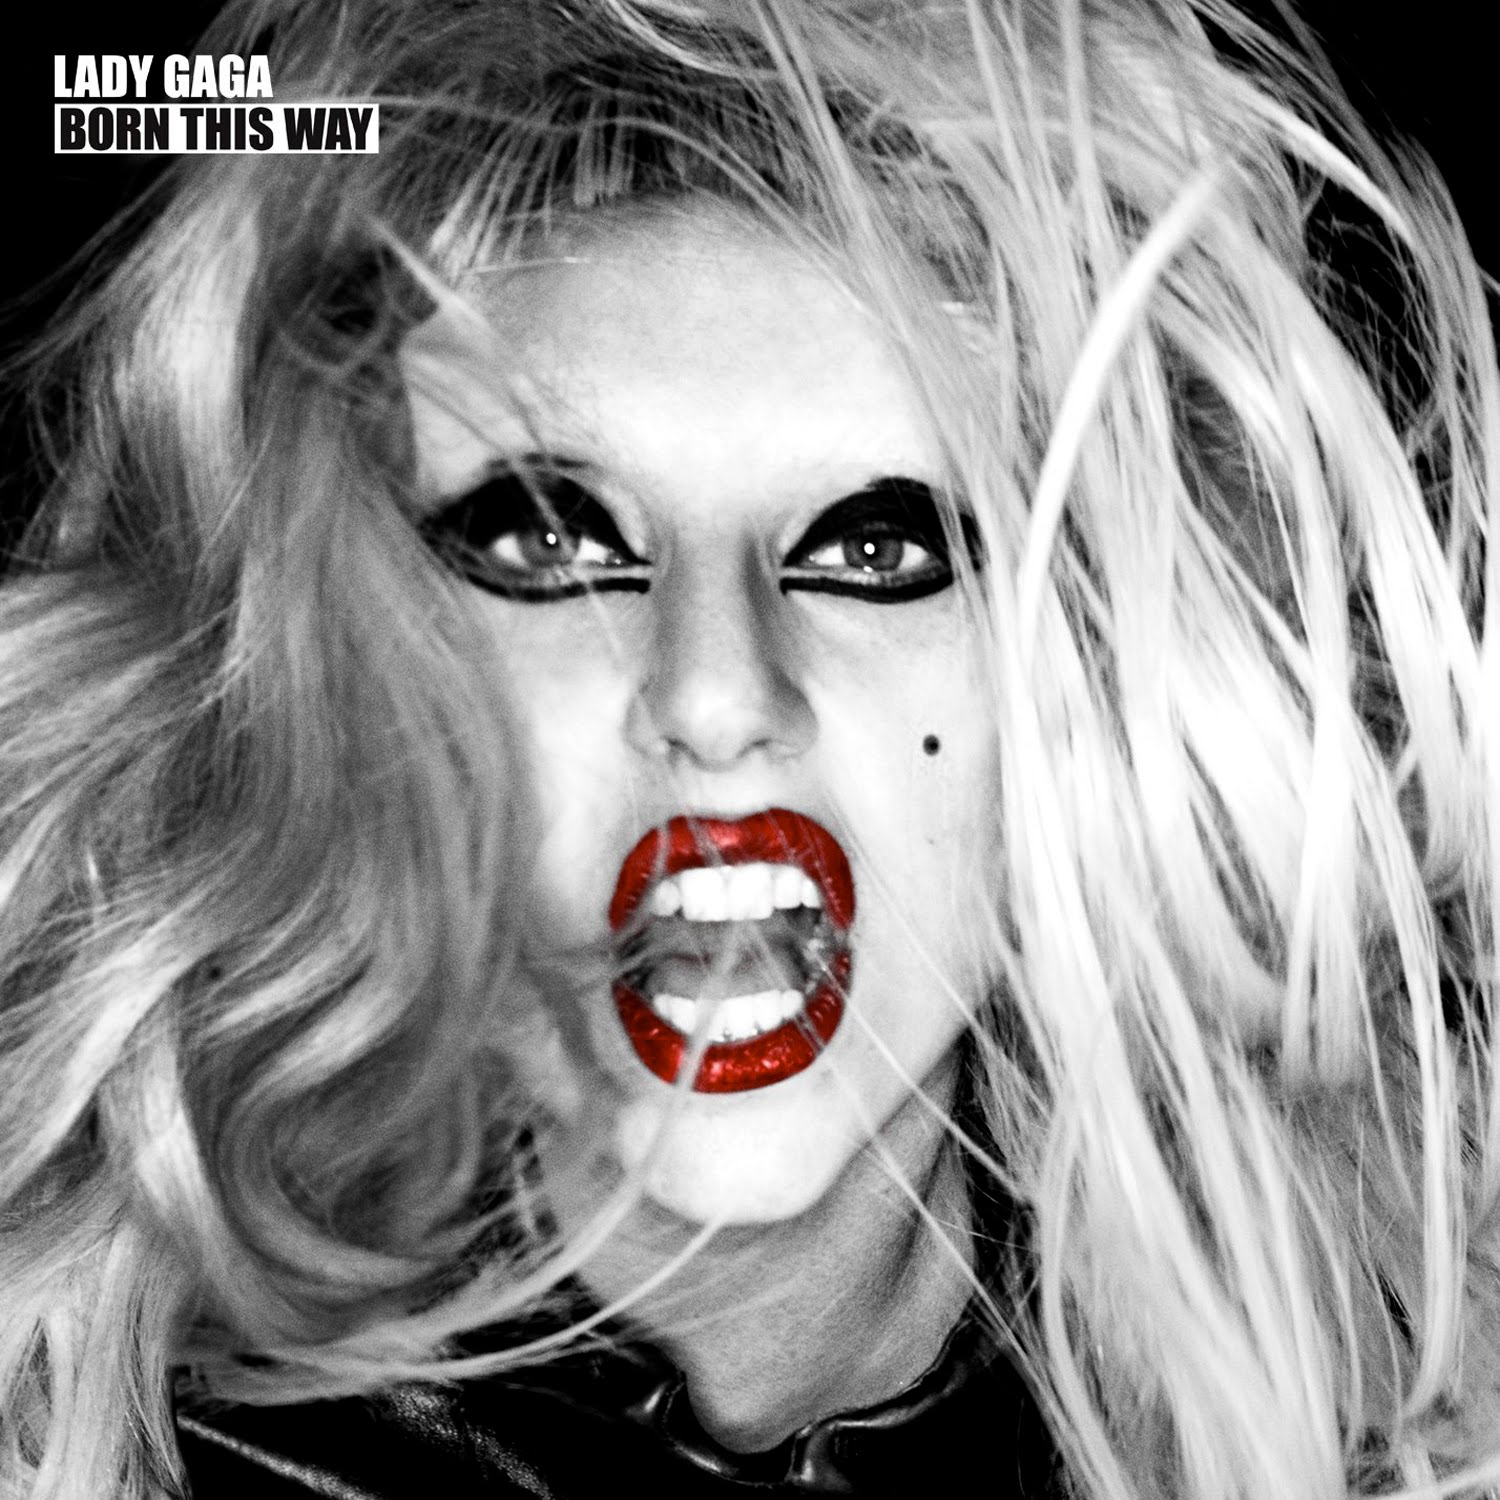 http://1.bp.blogspot.com/-UuhdXSw4mSs/T_-eS6CfQJI/AAAAAAAABKU/_cRwKgL61lI/s1600/Lady-GaGa-Born-This-Way-Official-Album-Cover-Deluxe-Edition1.jpg